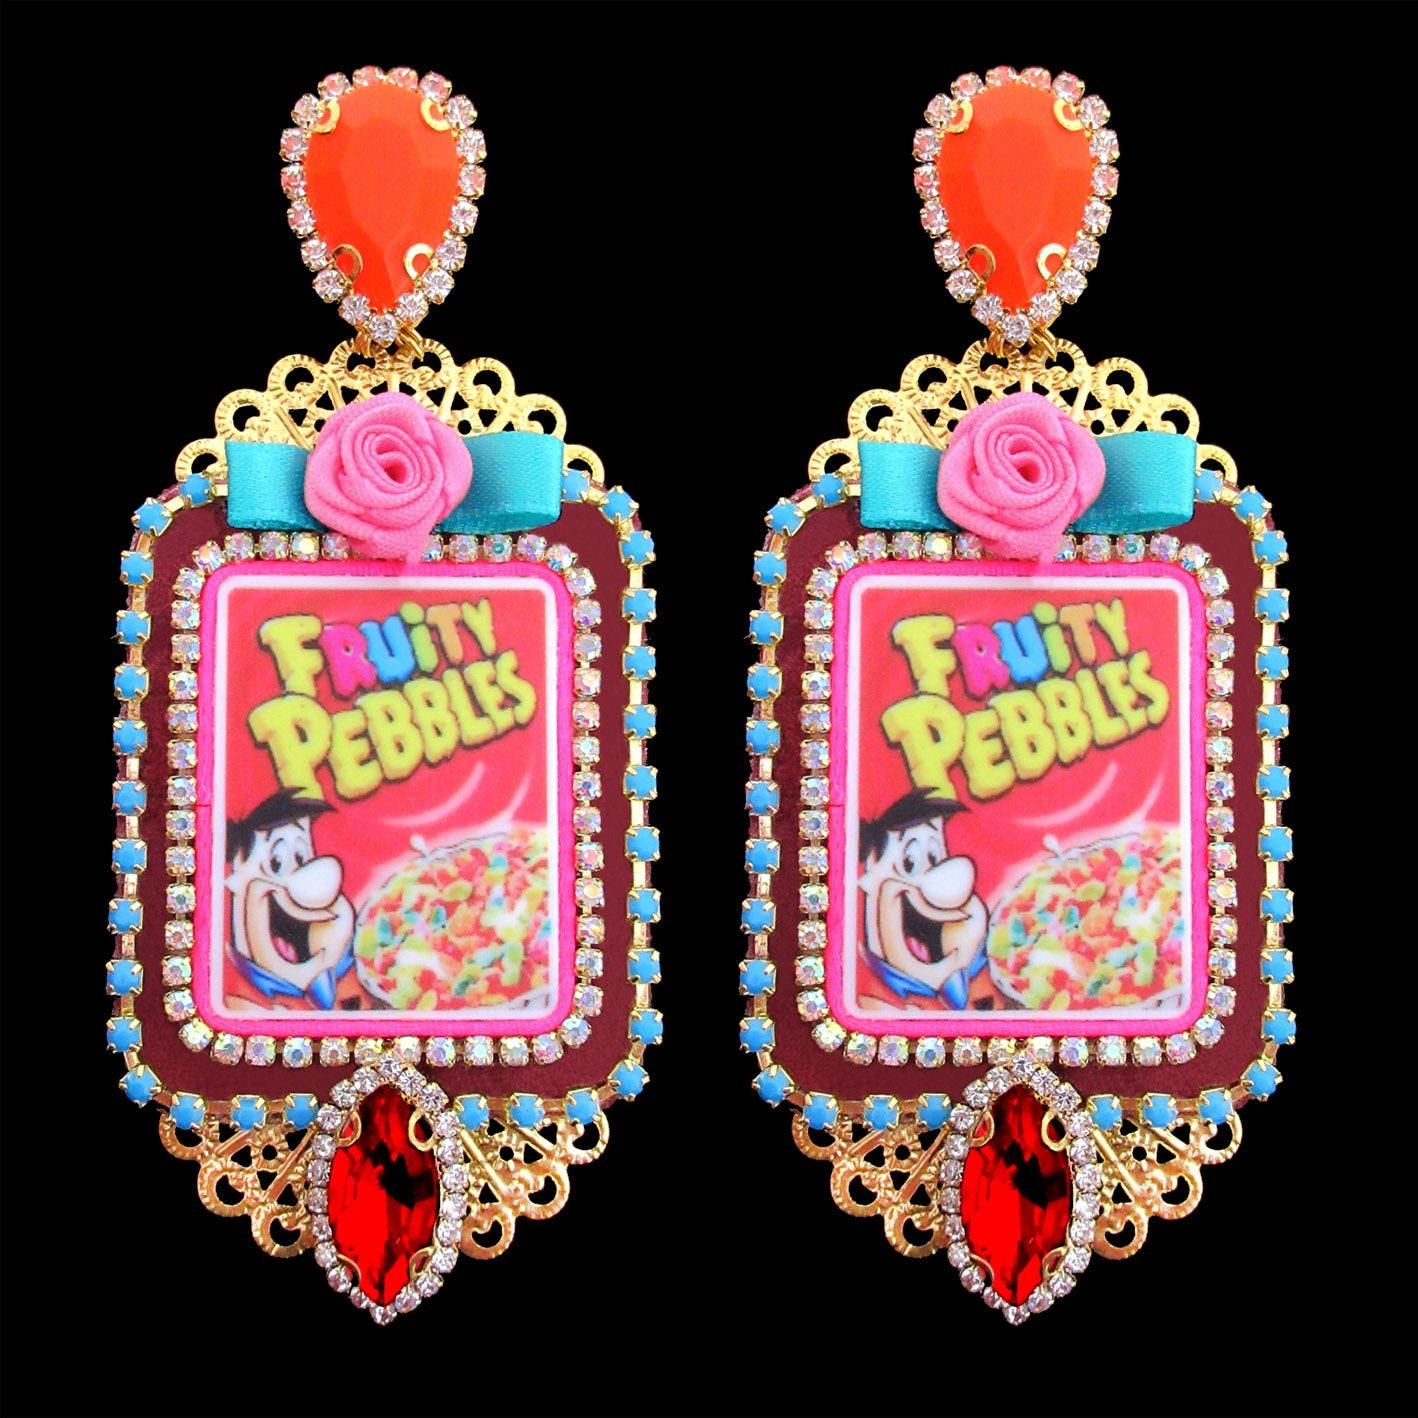 Fruity mouchkine jewelry earrings, a pop art and trendy jewel for pop culture style